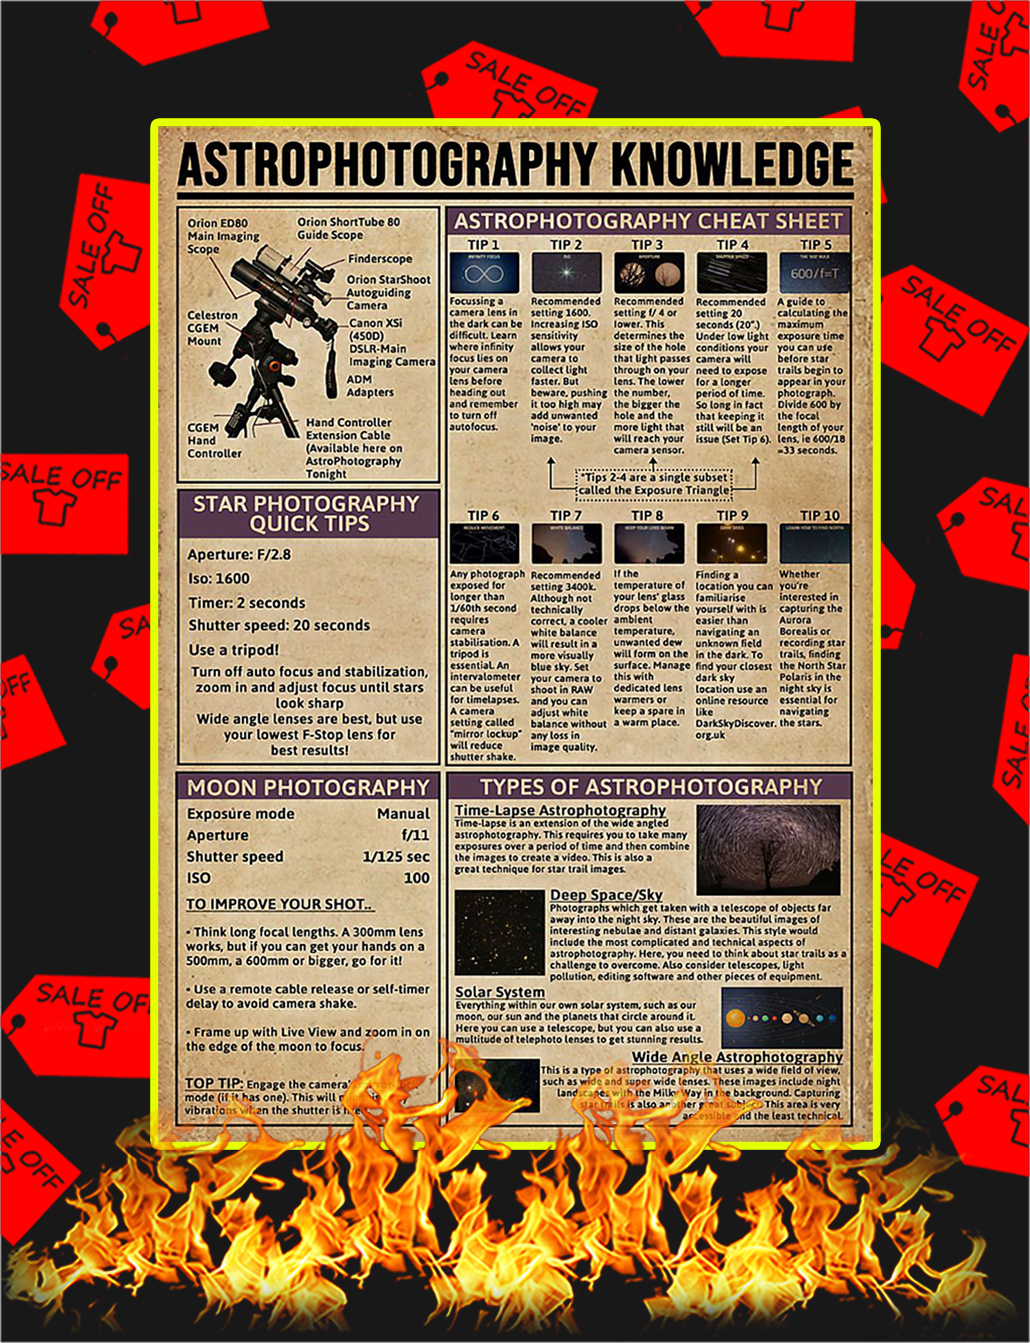 Astrophotography Knowledge Poster - A4